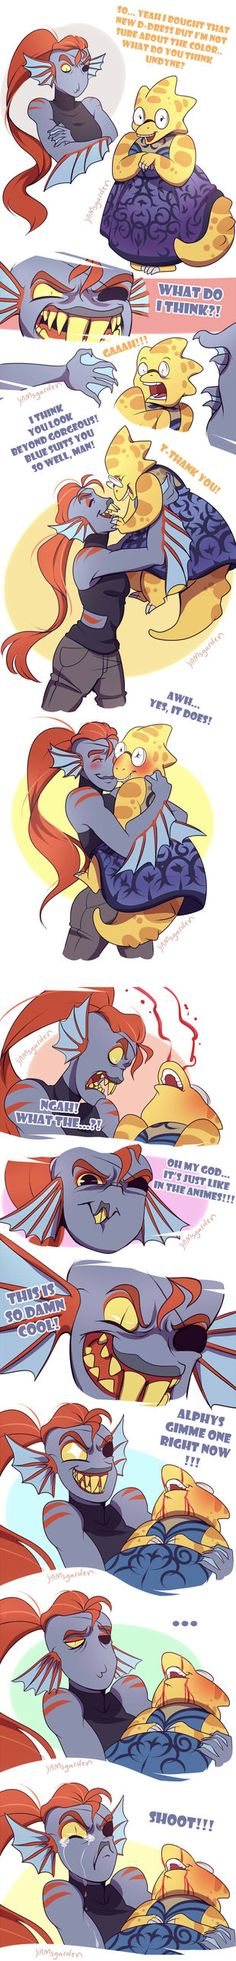 TUMBLR: yamsgarden.tumblr.com/post/136… *Thanks a bunch everyone for reporting when my stuff's reposted, I can't tell you how much I appreciate Yesssss I know, I know, Undyne should have sti...